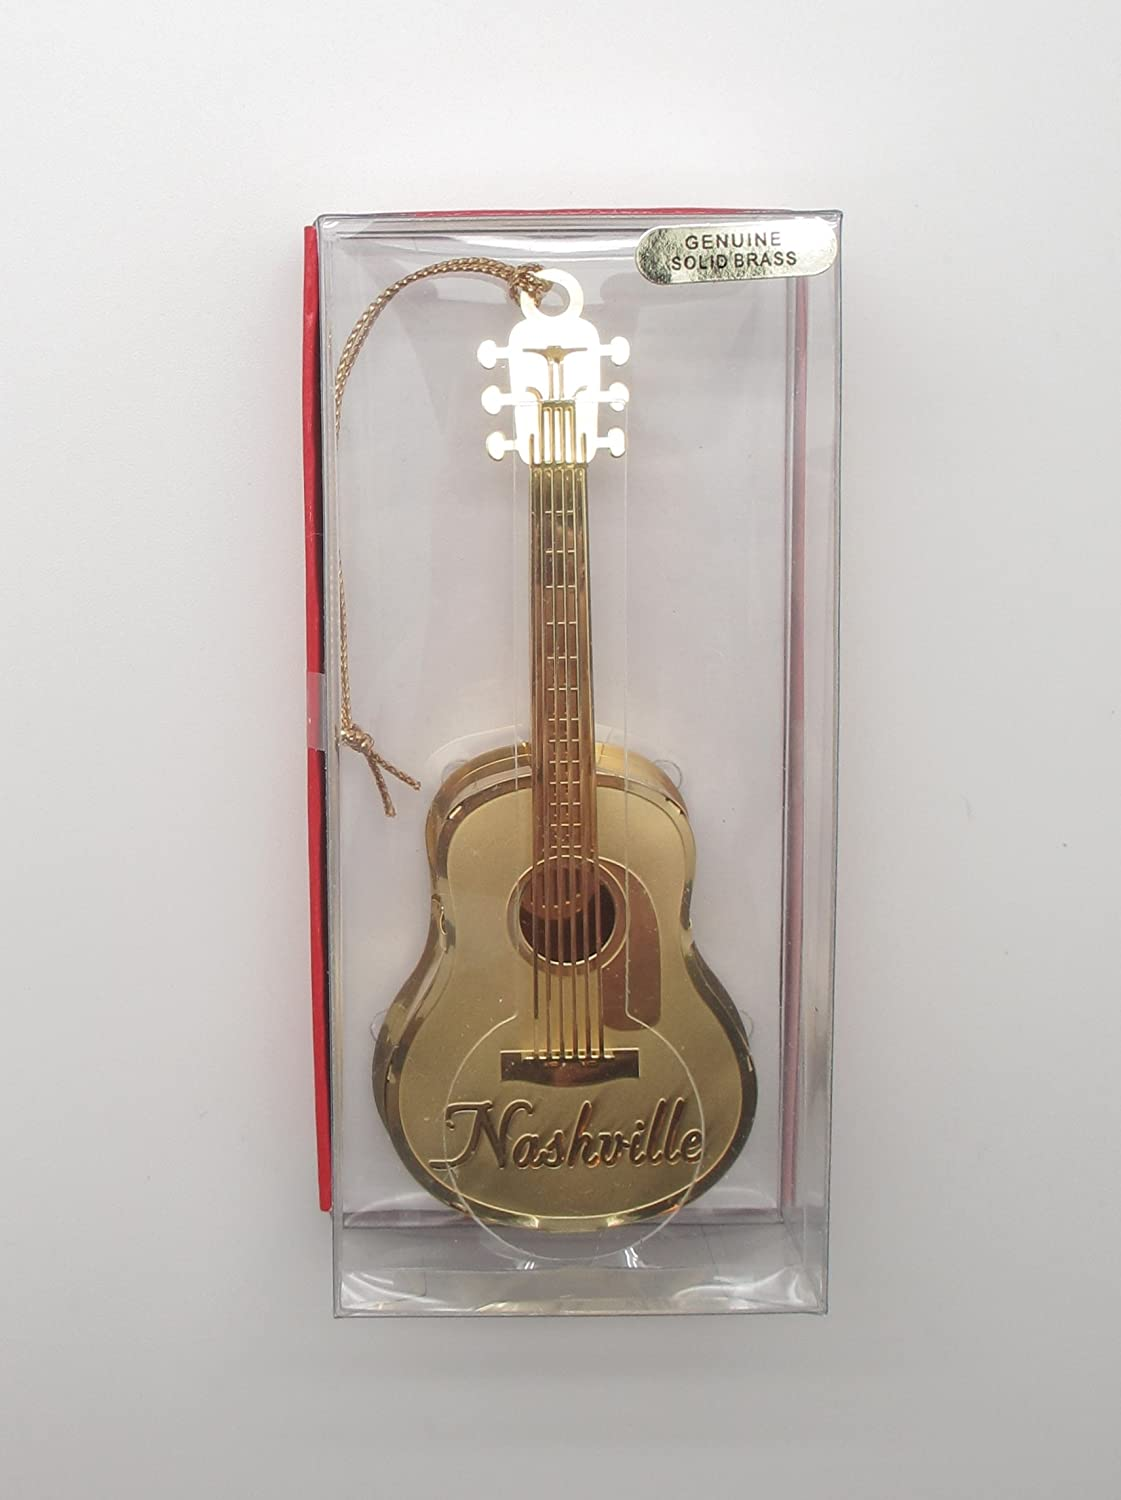 Amazoncom Nashville Guitar Christmas ORNAMENT Tennessee Music